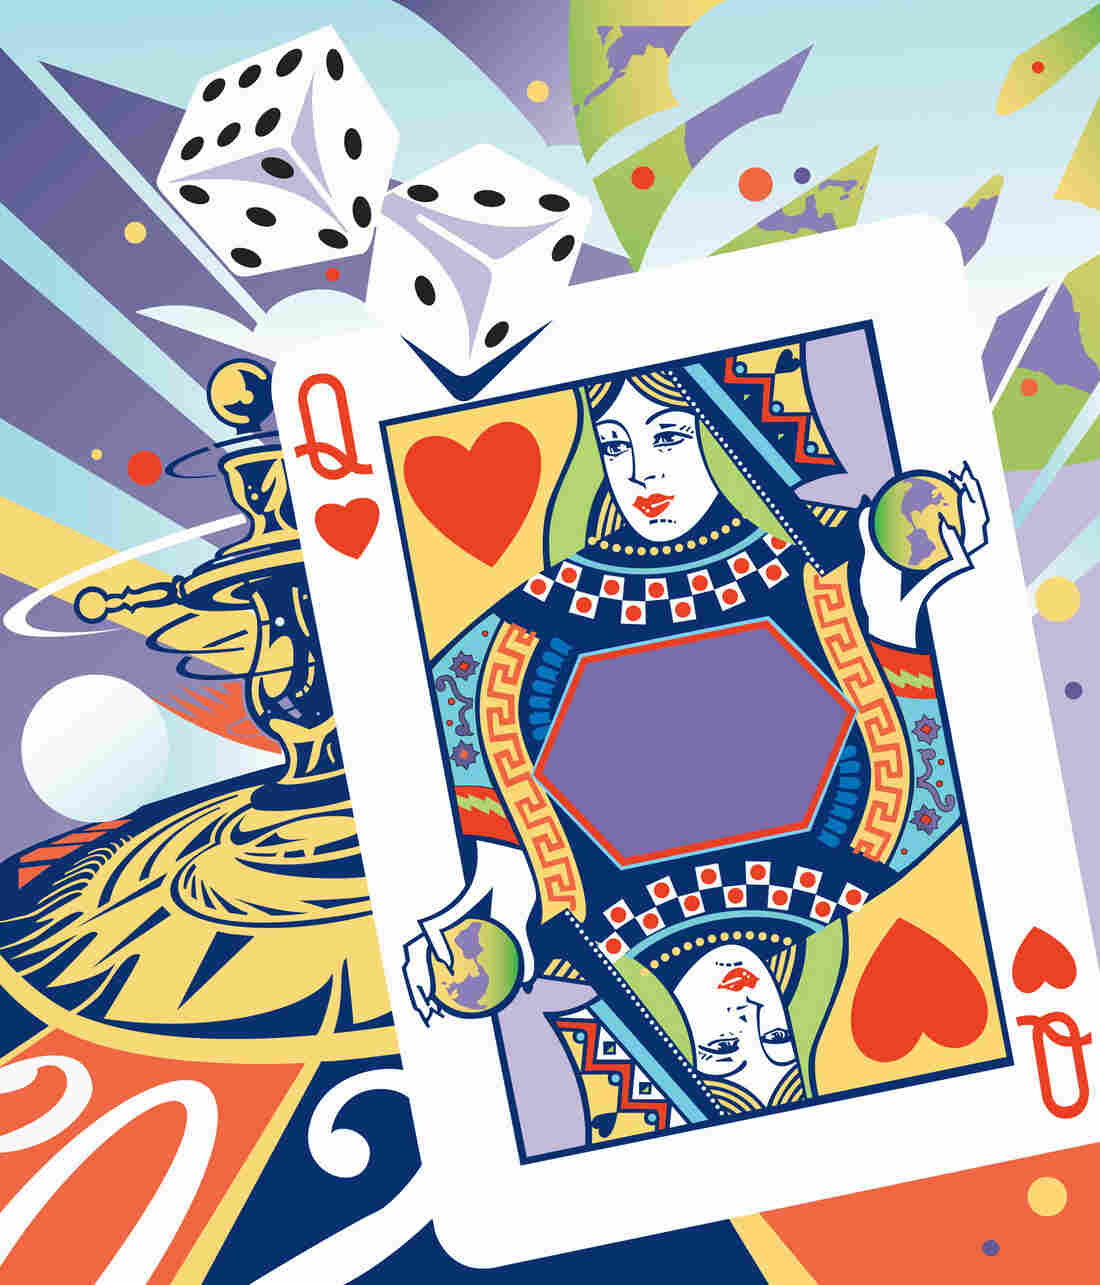 No gambling here: When asked to weigh financial choices, teenagers were more likely to make careful choices than were young adults.